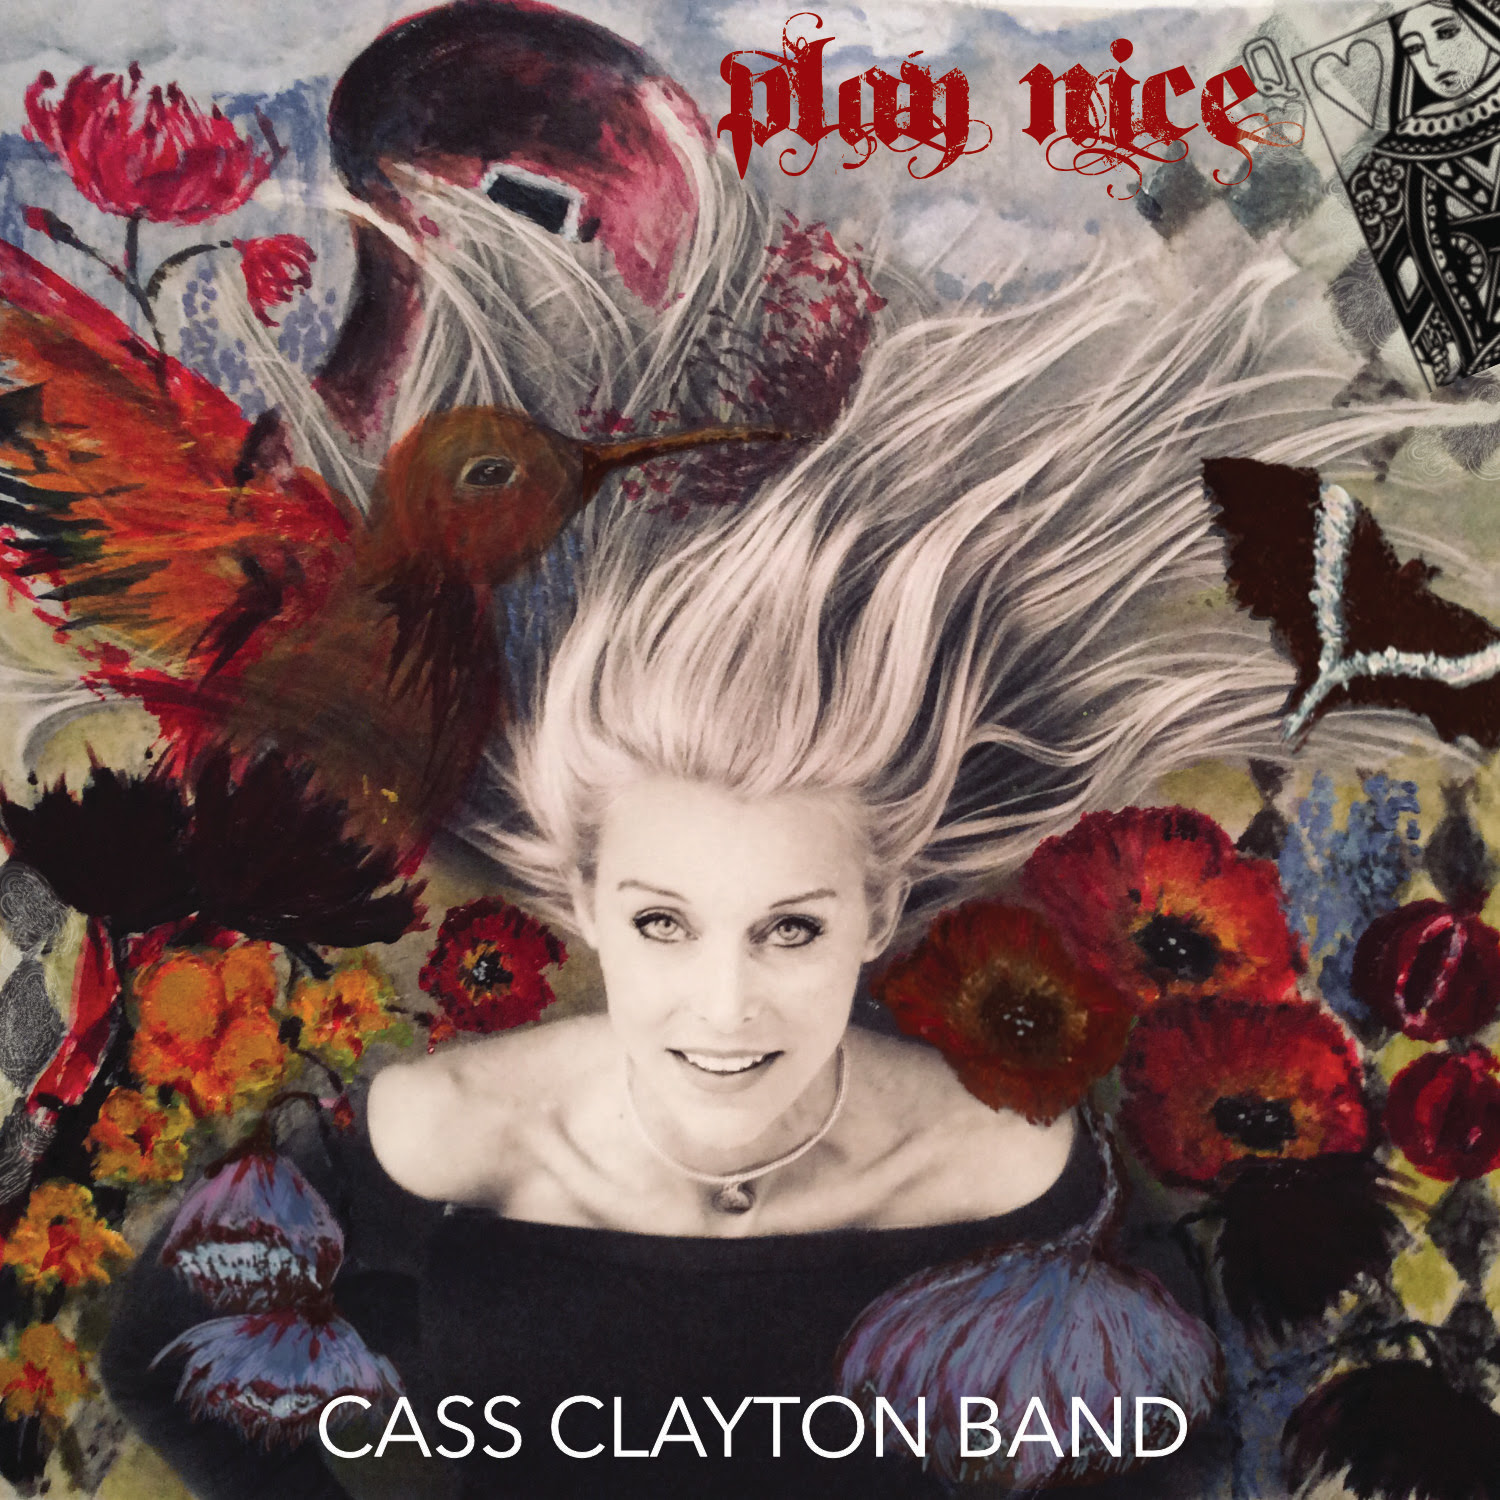 FEATURED MEMBERS: For July: Cass Clayton Band and Steve Glotzer